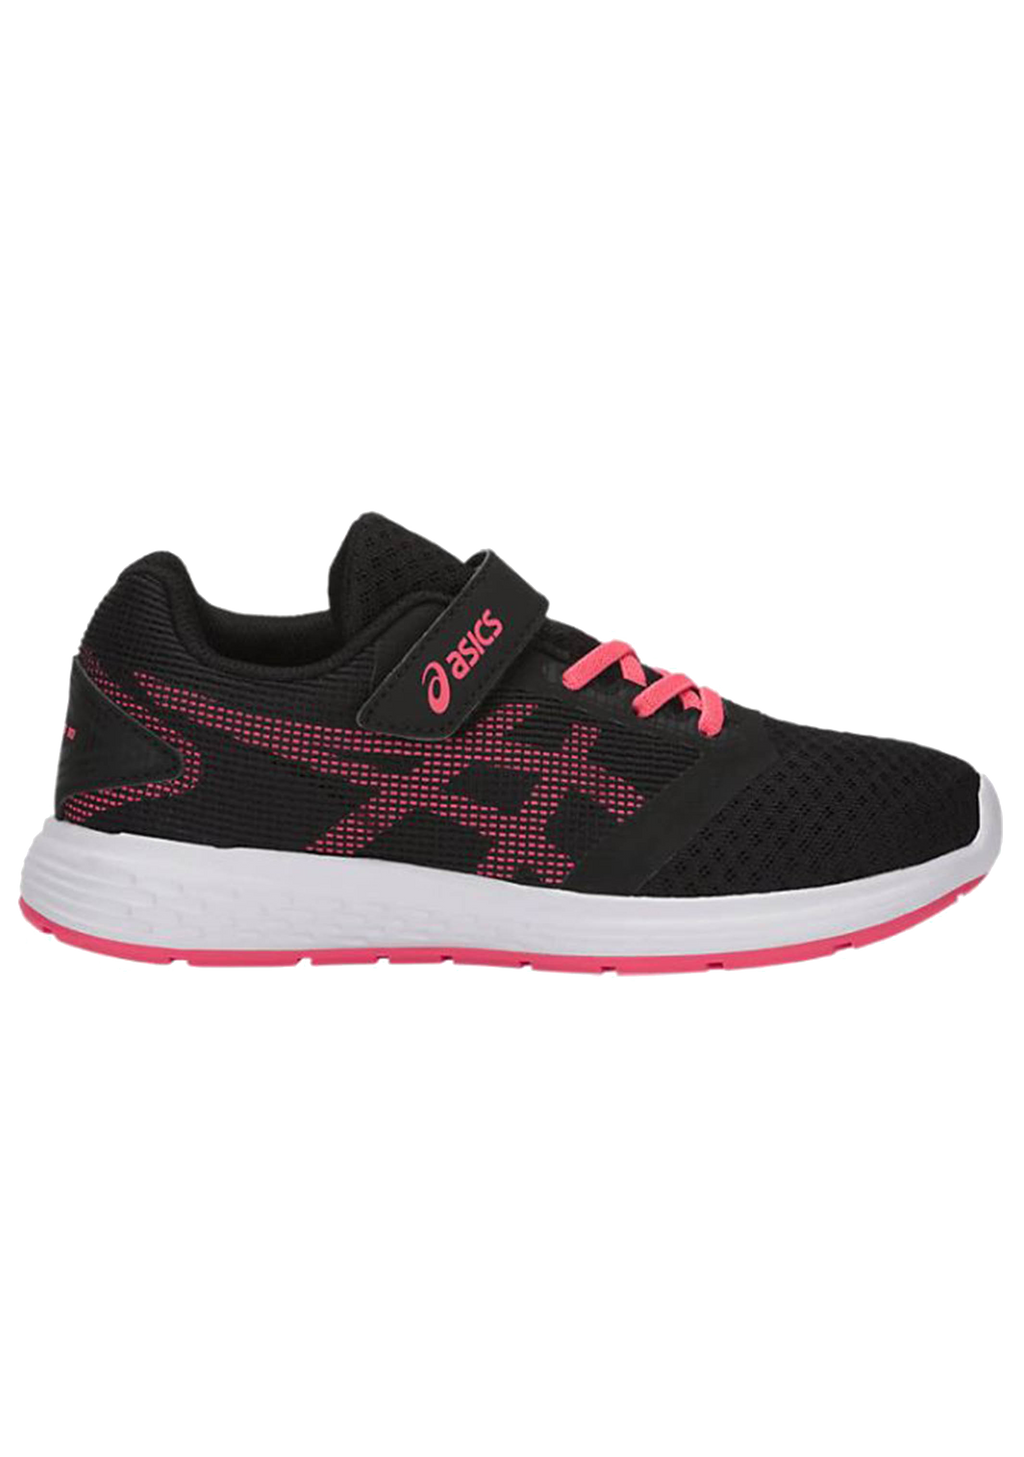 ASICS PATRIOT 10 PS JUNIOR <br> 1014A026 003